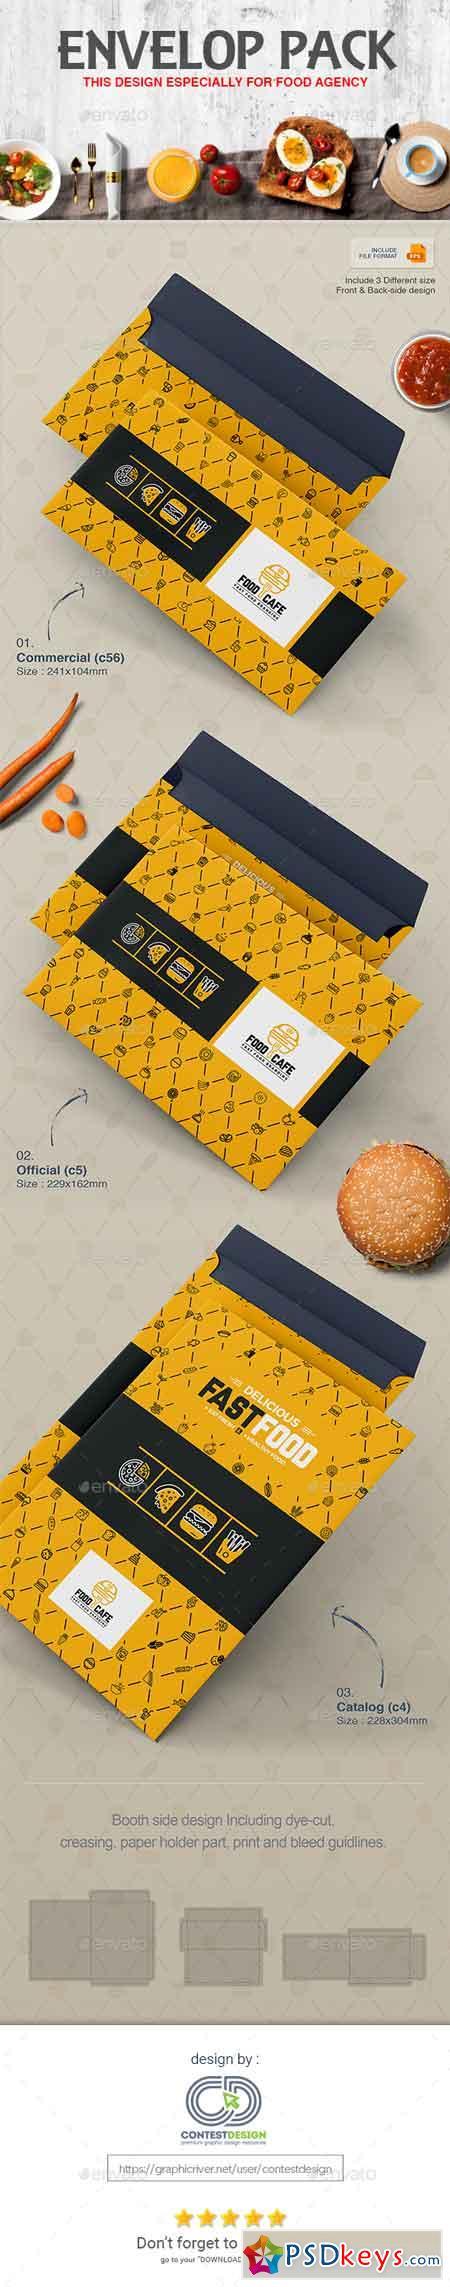 Envelop Design Pack Template for Fast Food Restaurants Cafe 20350783